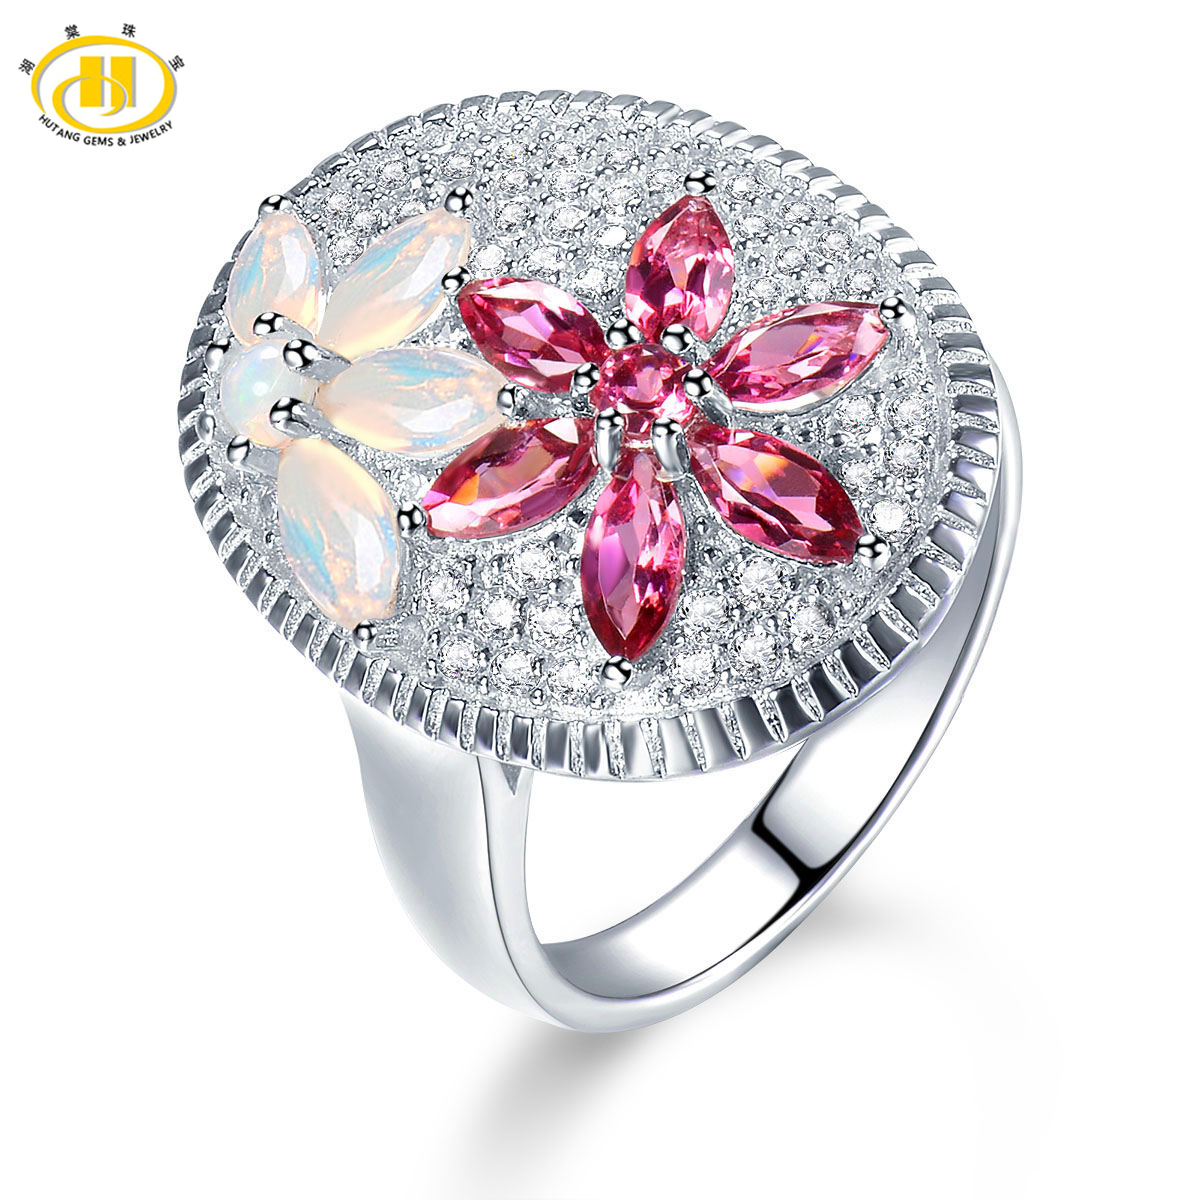 Hutang Natural Rhodolite Garnet & Opal Ring Solid 925 Sterling Silver Luxury Fine Gemstone Jewelry for Women Christmas Gift